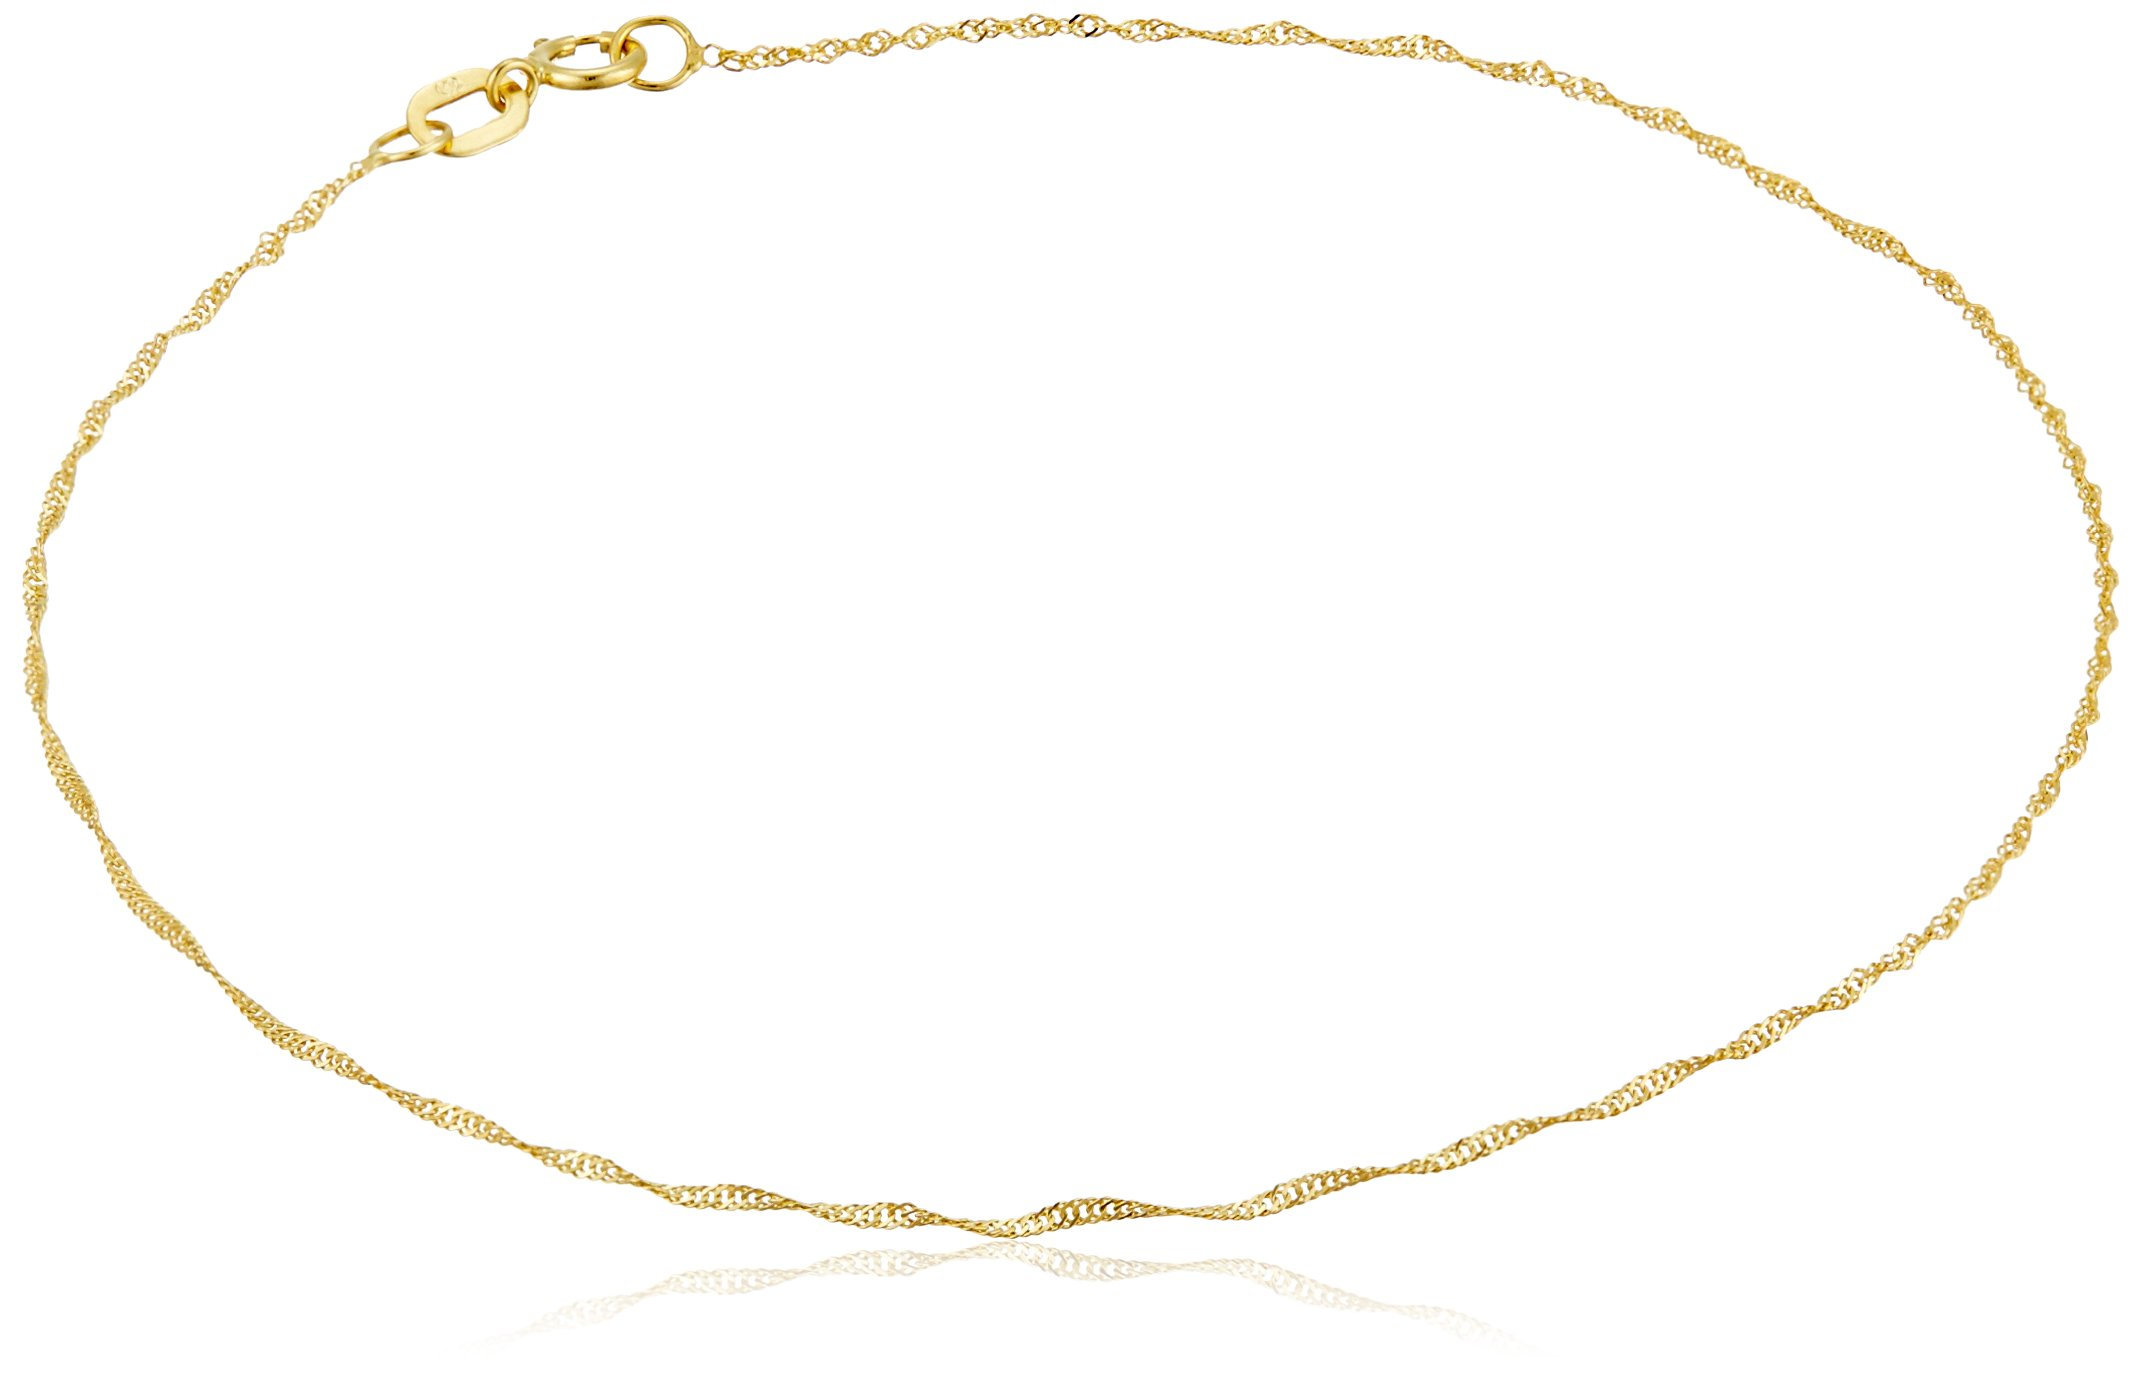 14k Yellow Gold Twist Curb Chain Anklet, 9''